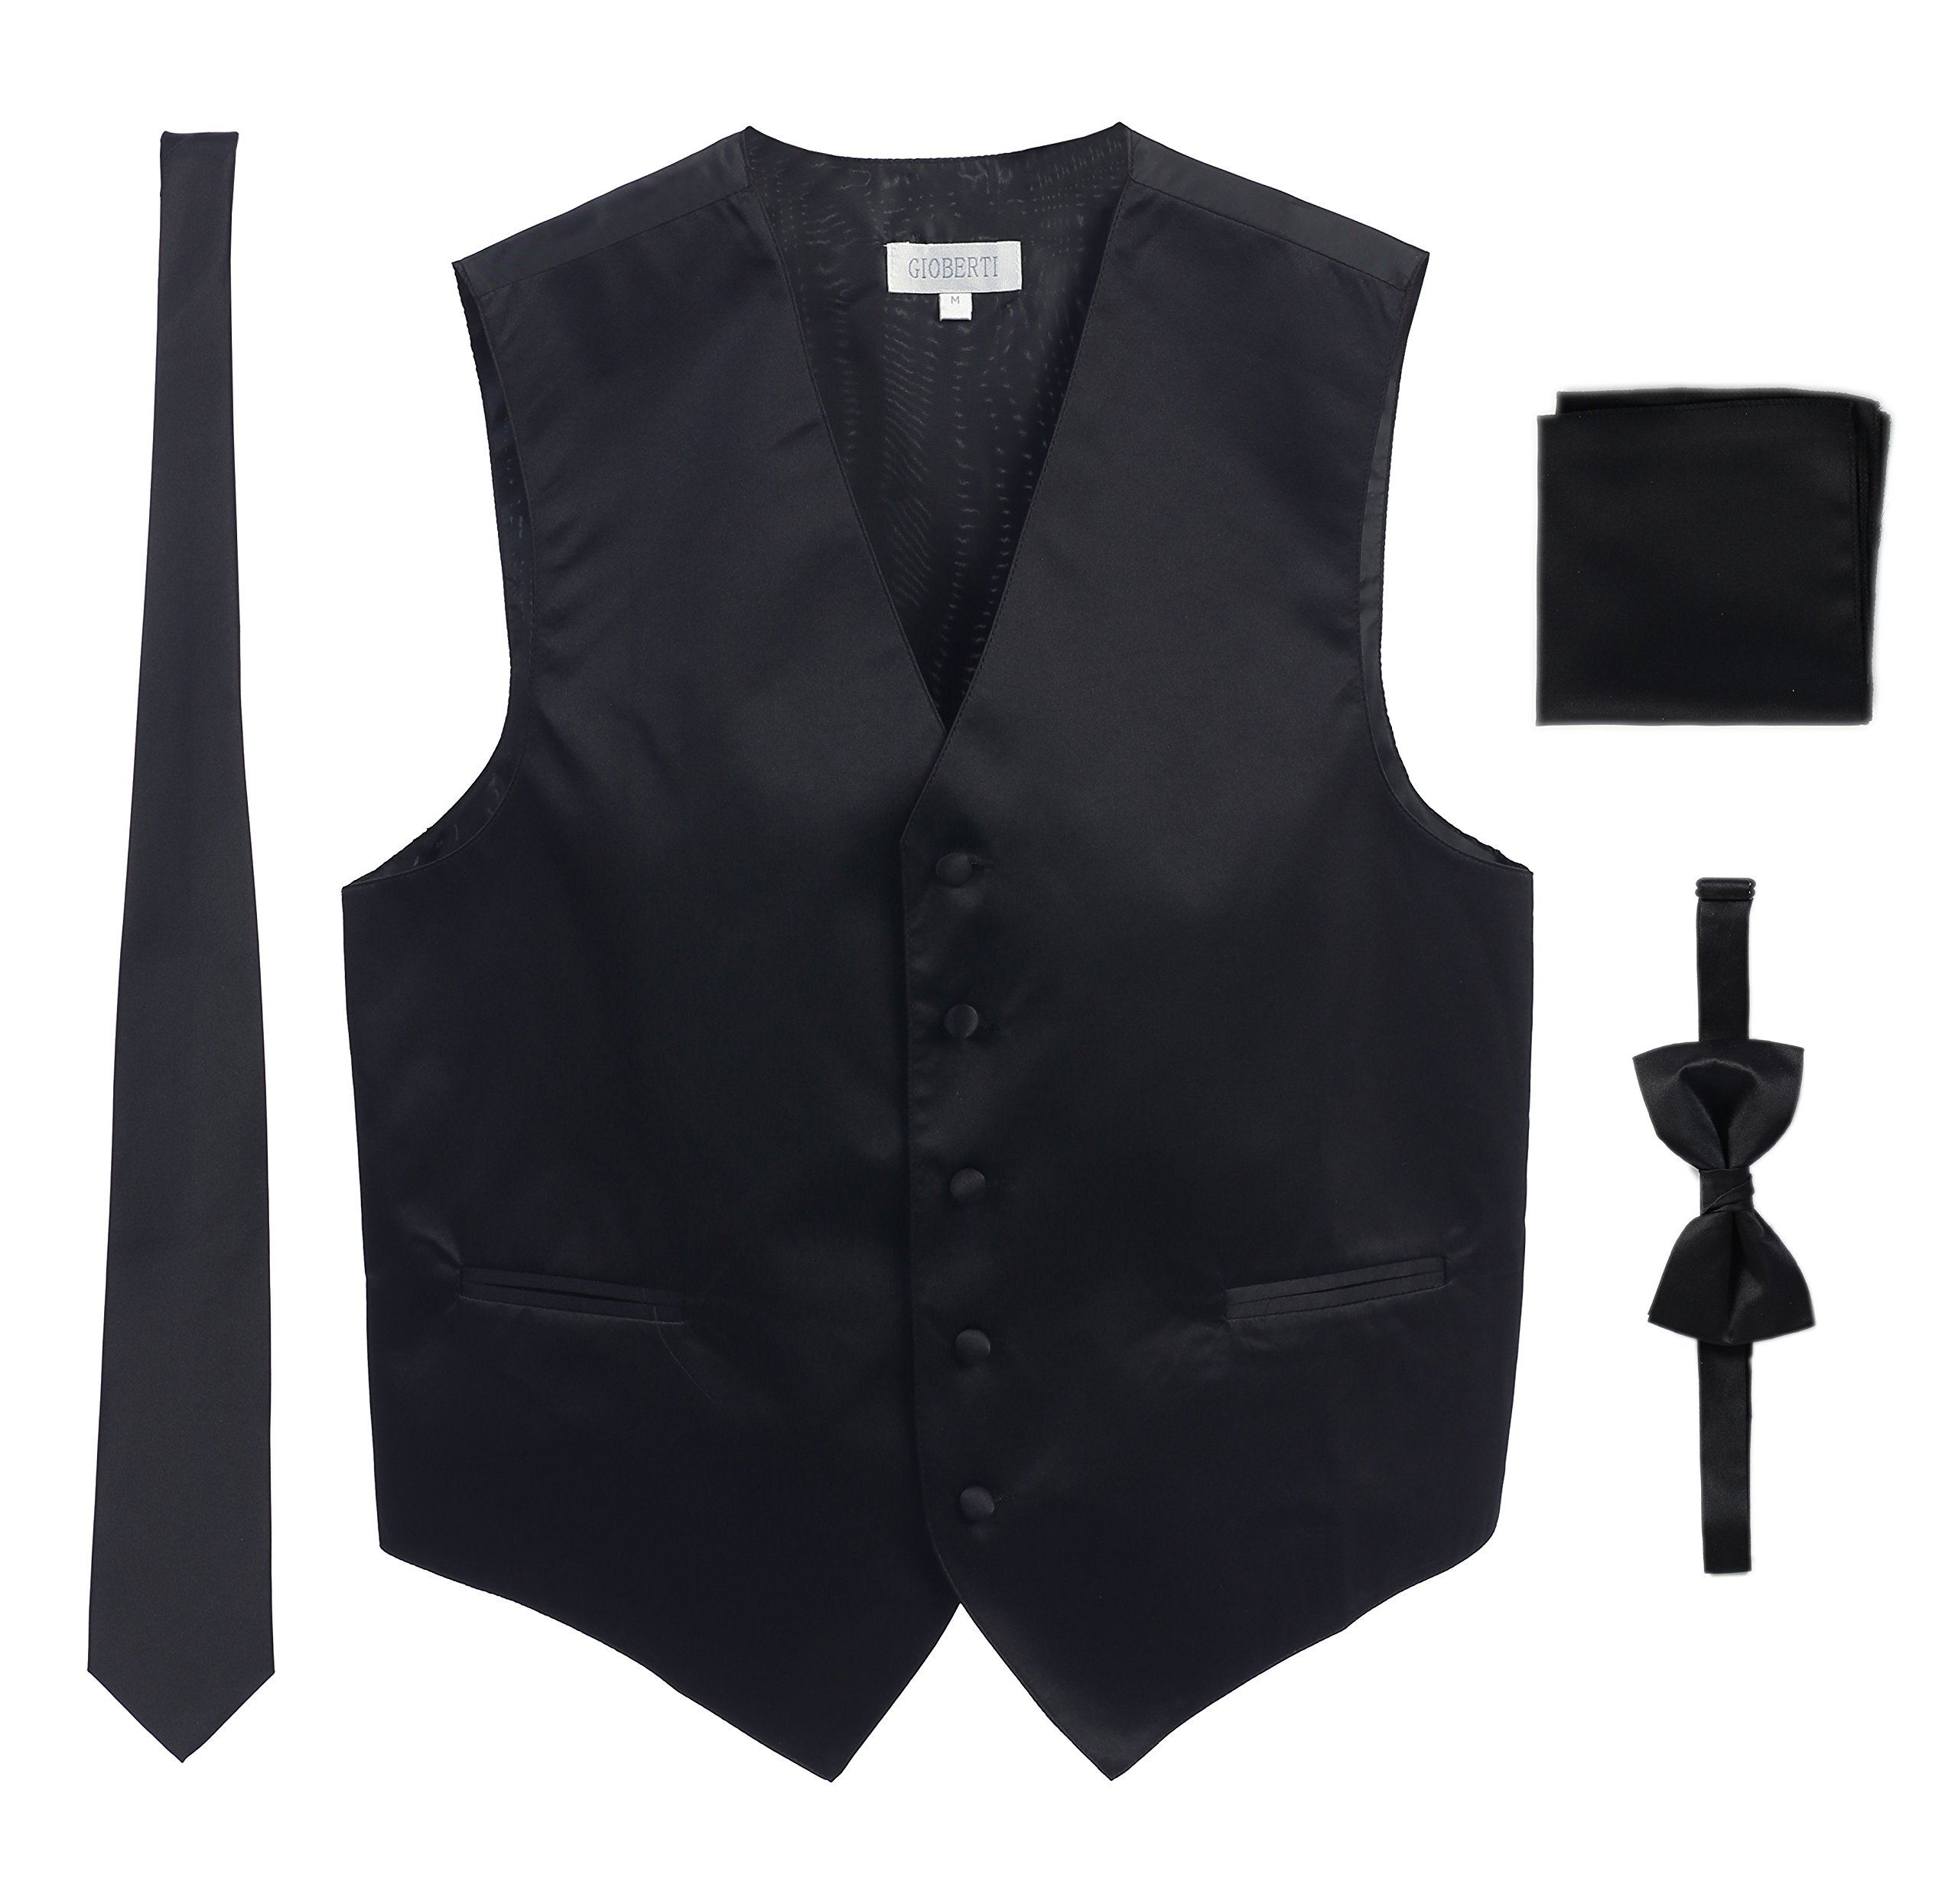 Men's Formal 4pc Satin Vest Necktie Bowtie and Pocket Square, Black, X Large by Gioberti